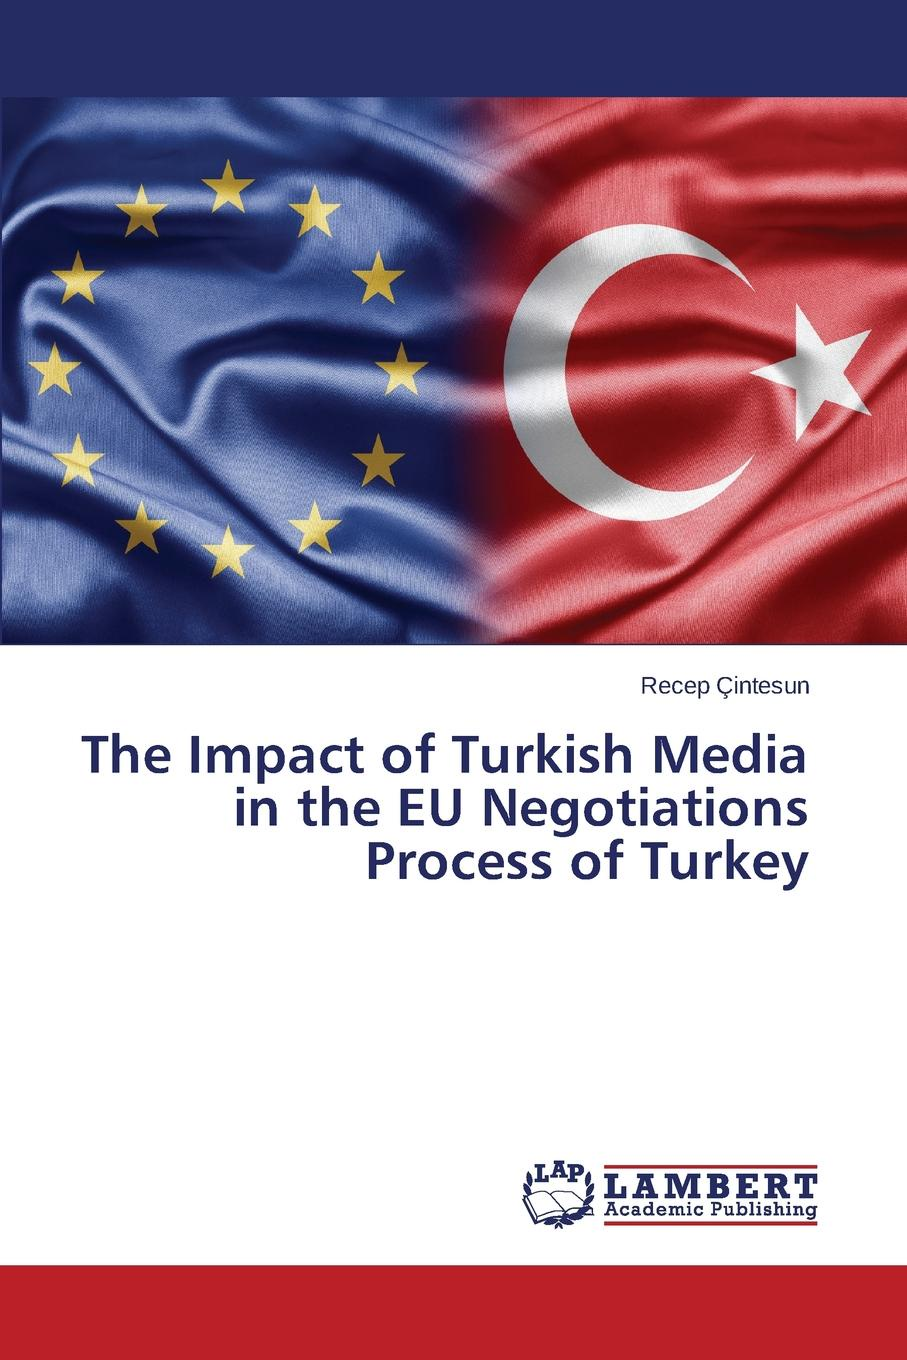 Çintesun Recep The Impact of Turkish Media in the EU Negotiations Process of Turkey negotiations and decision making in the european union teaching and learning through role play simulation games